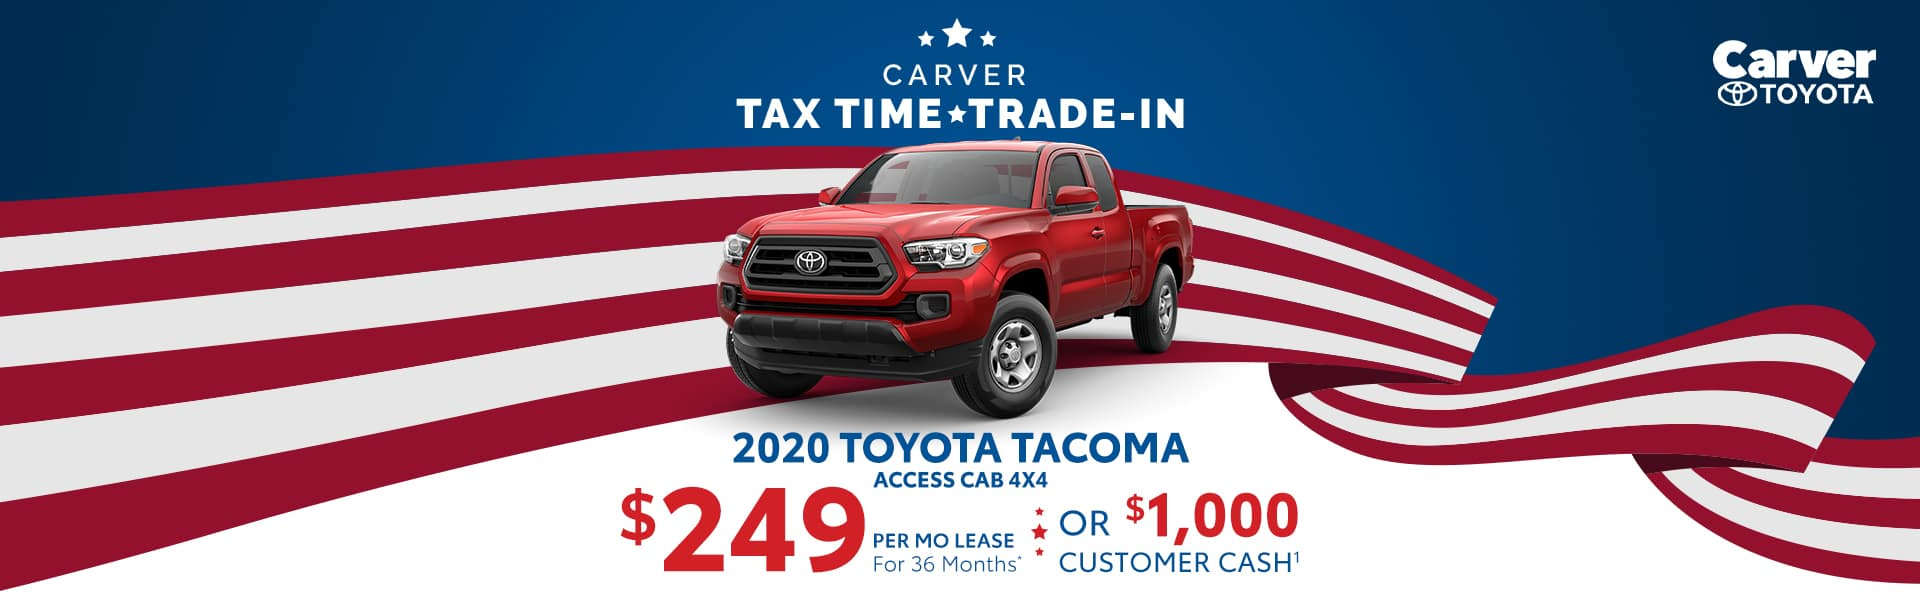 Only a $249 a month lease on a new Tacoma near Shelbyville, Indiana